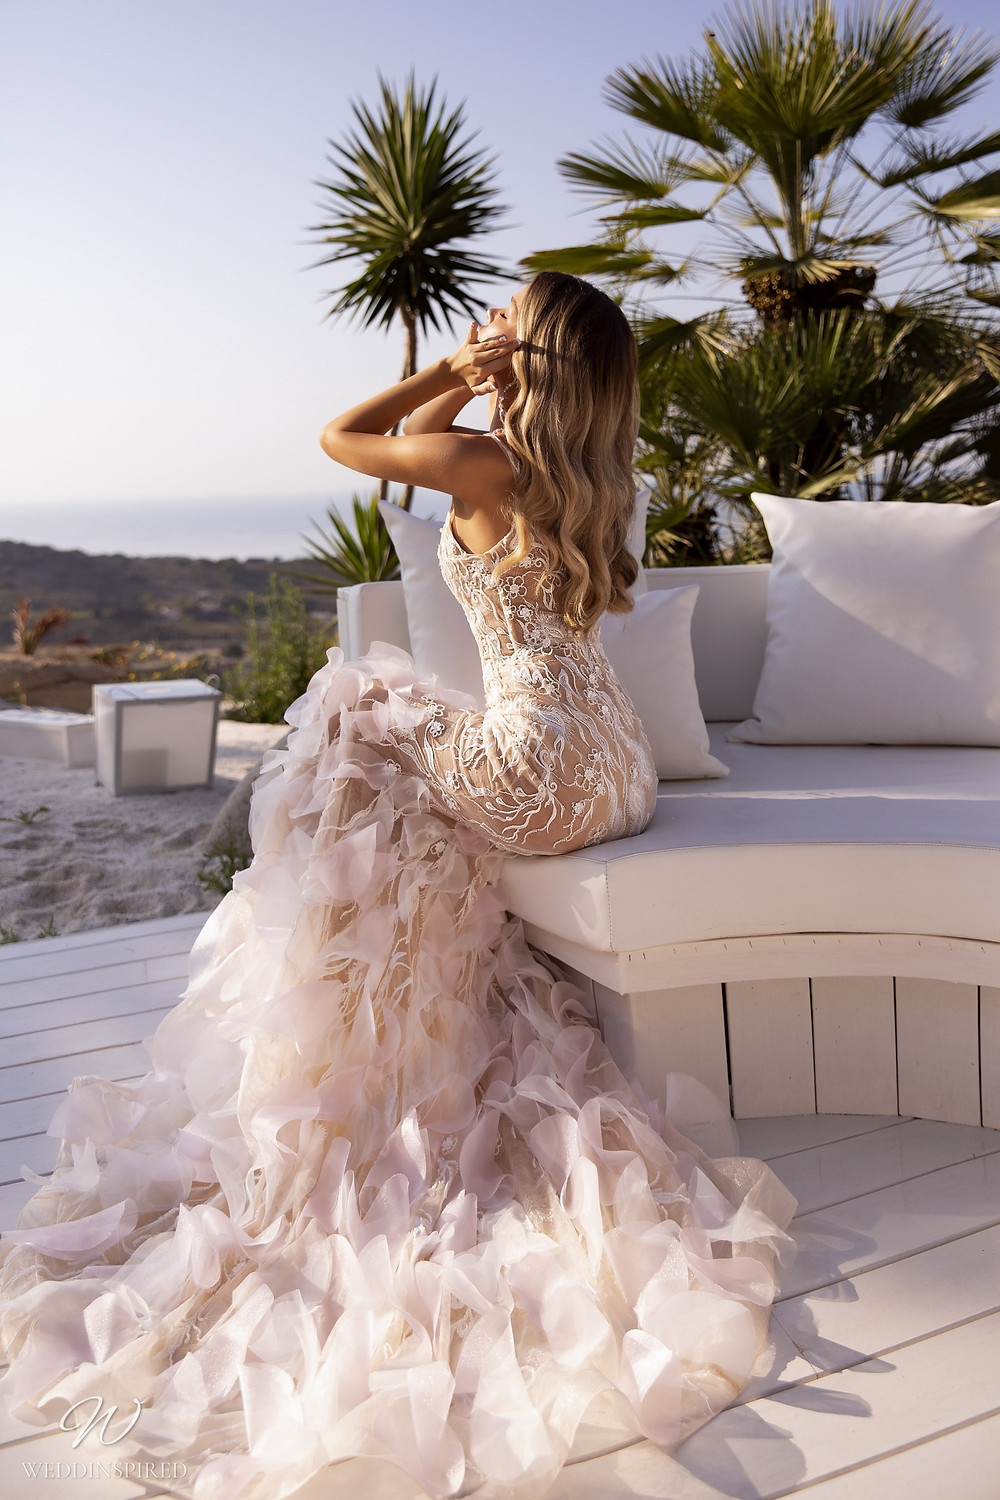 A Tina Valerdi blush lace fit and flare wedding dress with a ruffle skirt and lace